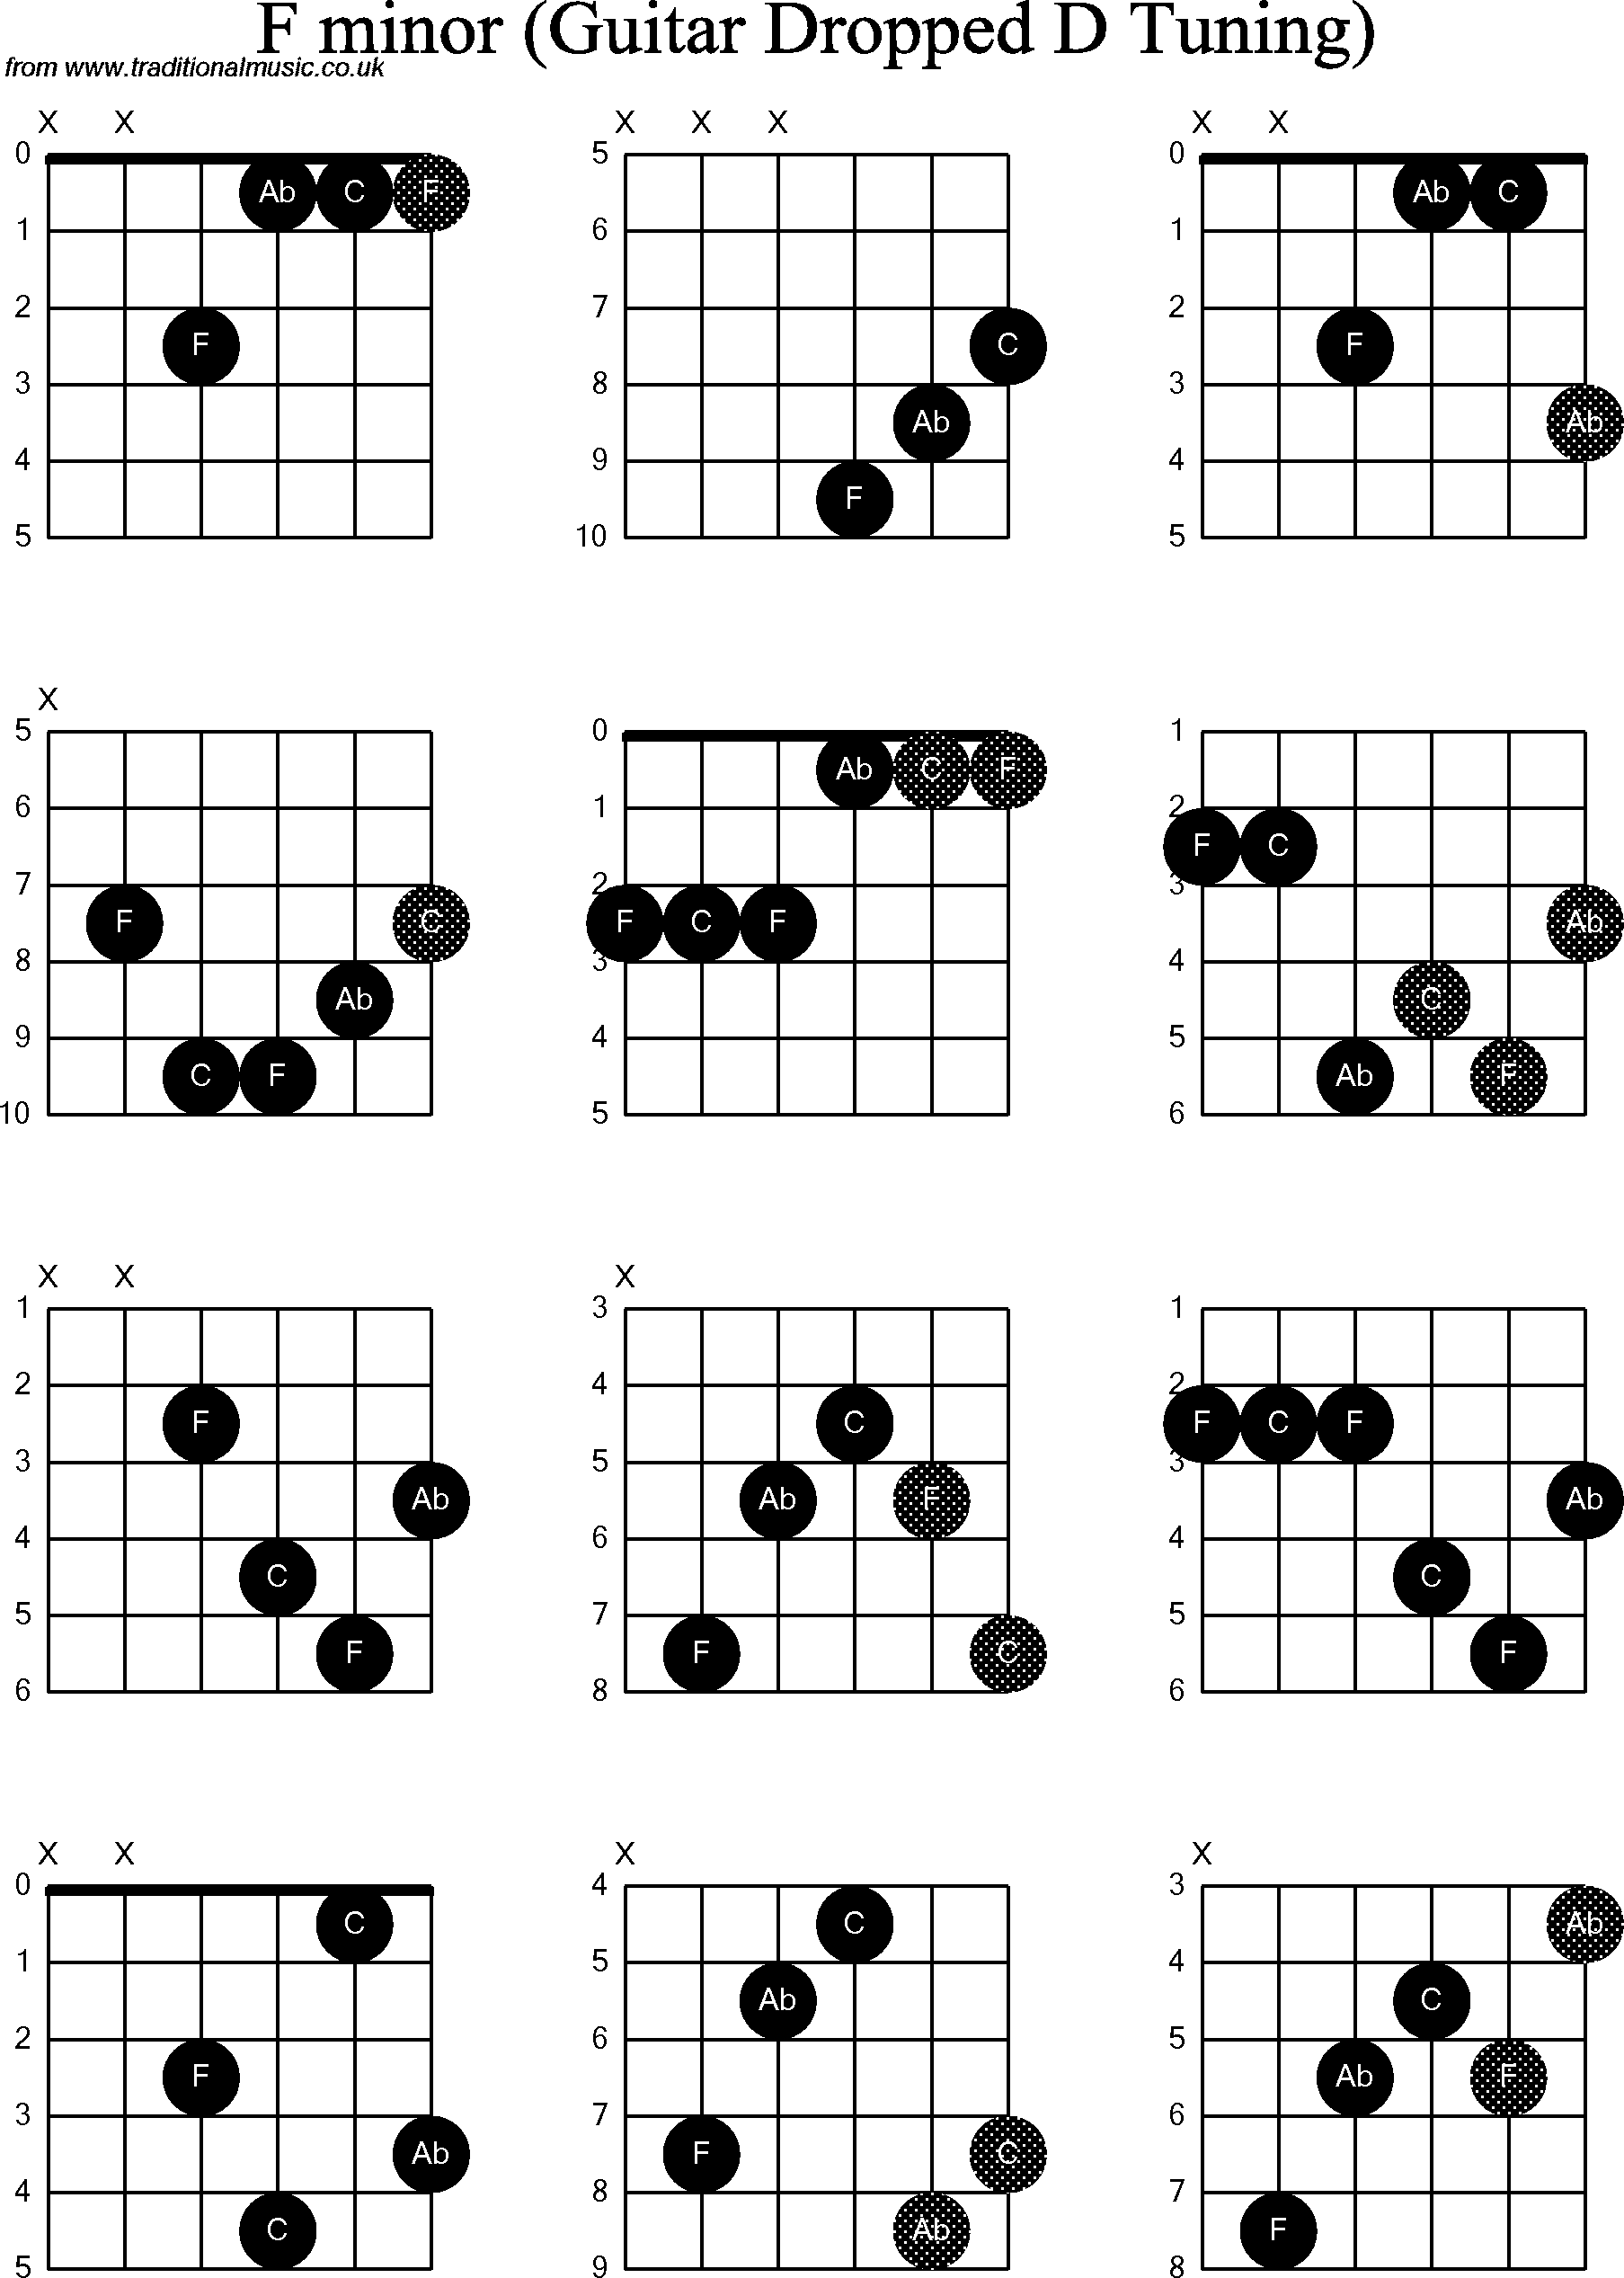 55 HOW TO PLAY GUITAR CHORD BB, TO BB HOW CHORD PLAY